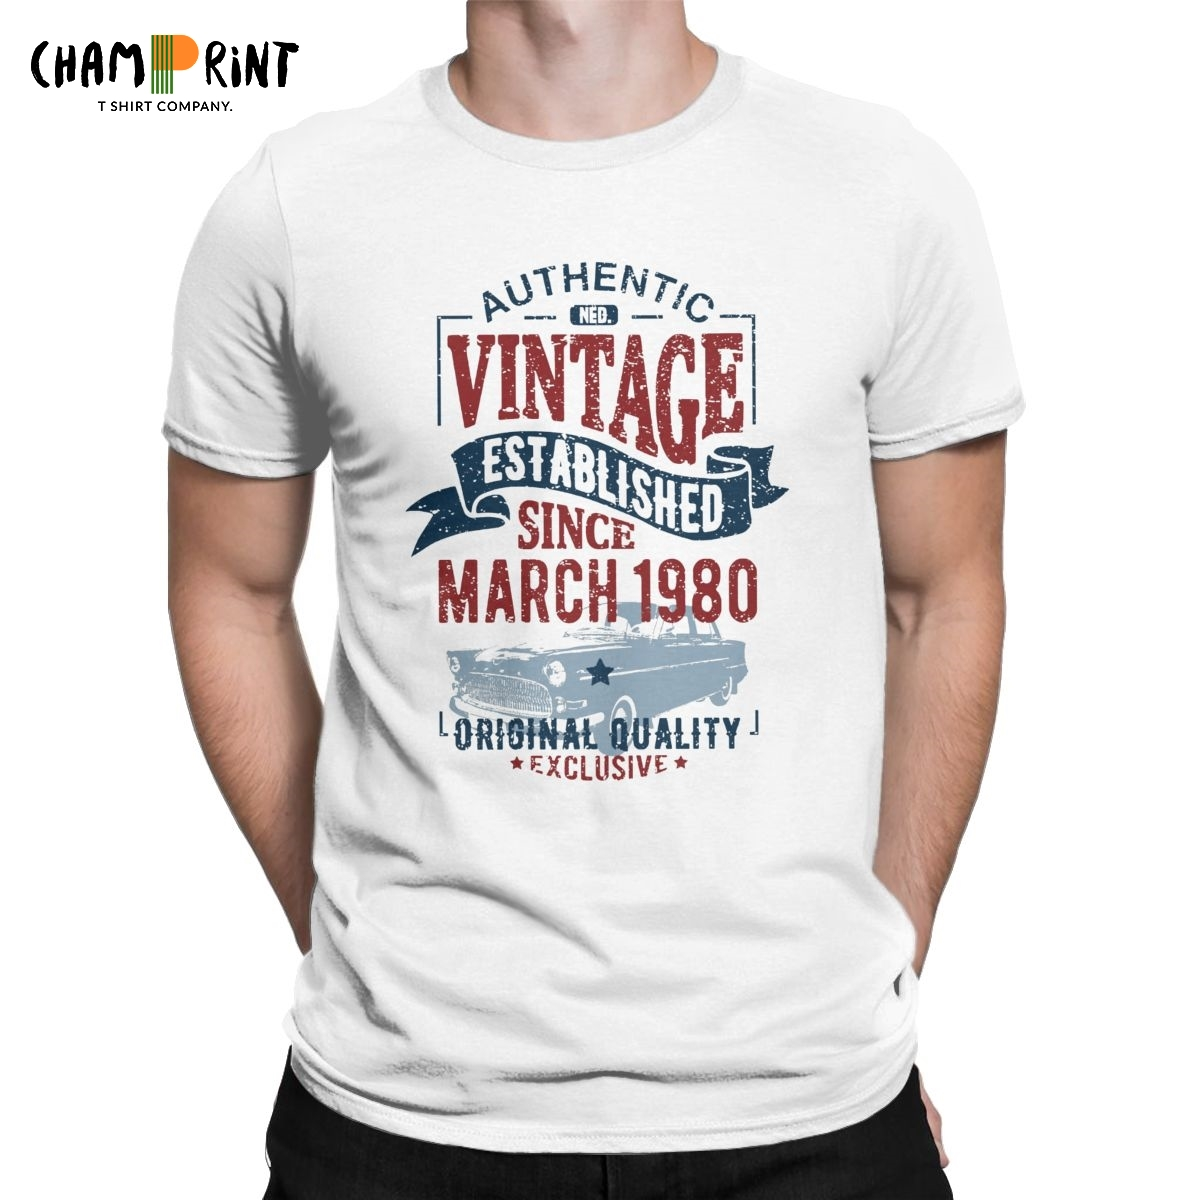 Men's T-Shirt Vintage Since March 1980 Humor Tee Shirt 40 Years Old 40th Birthday Gift T Shirt Round Collar Clothes Printing